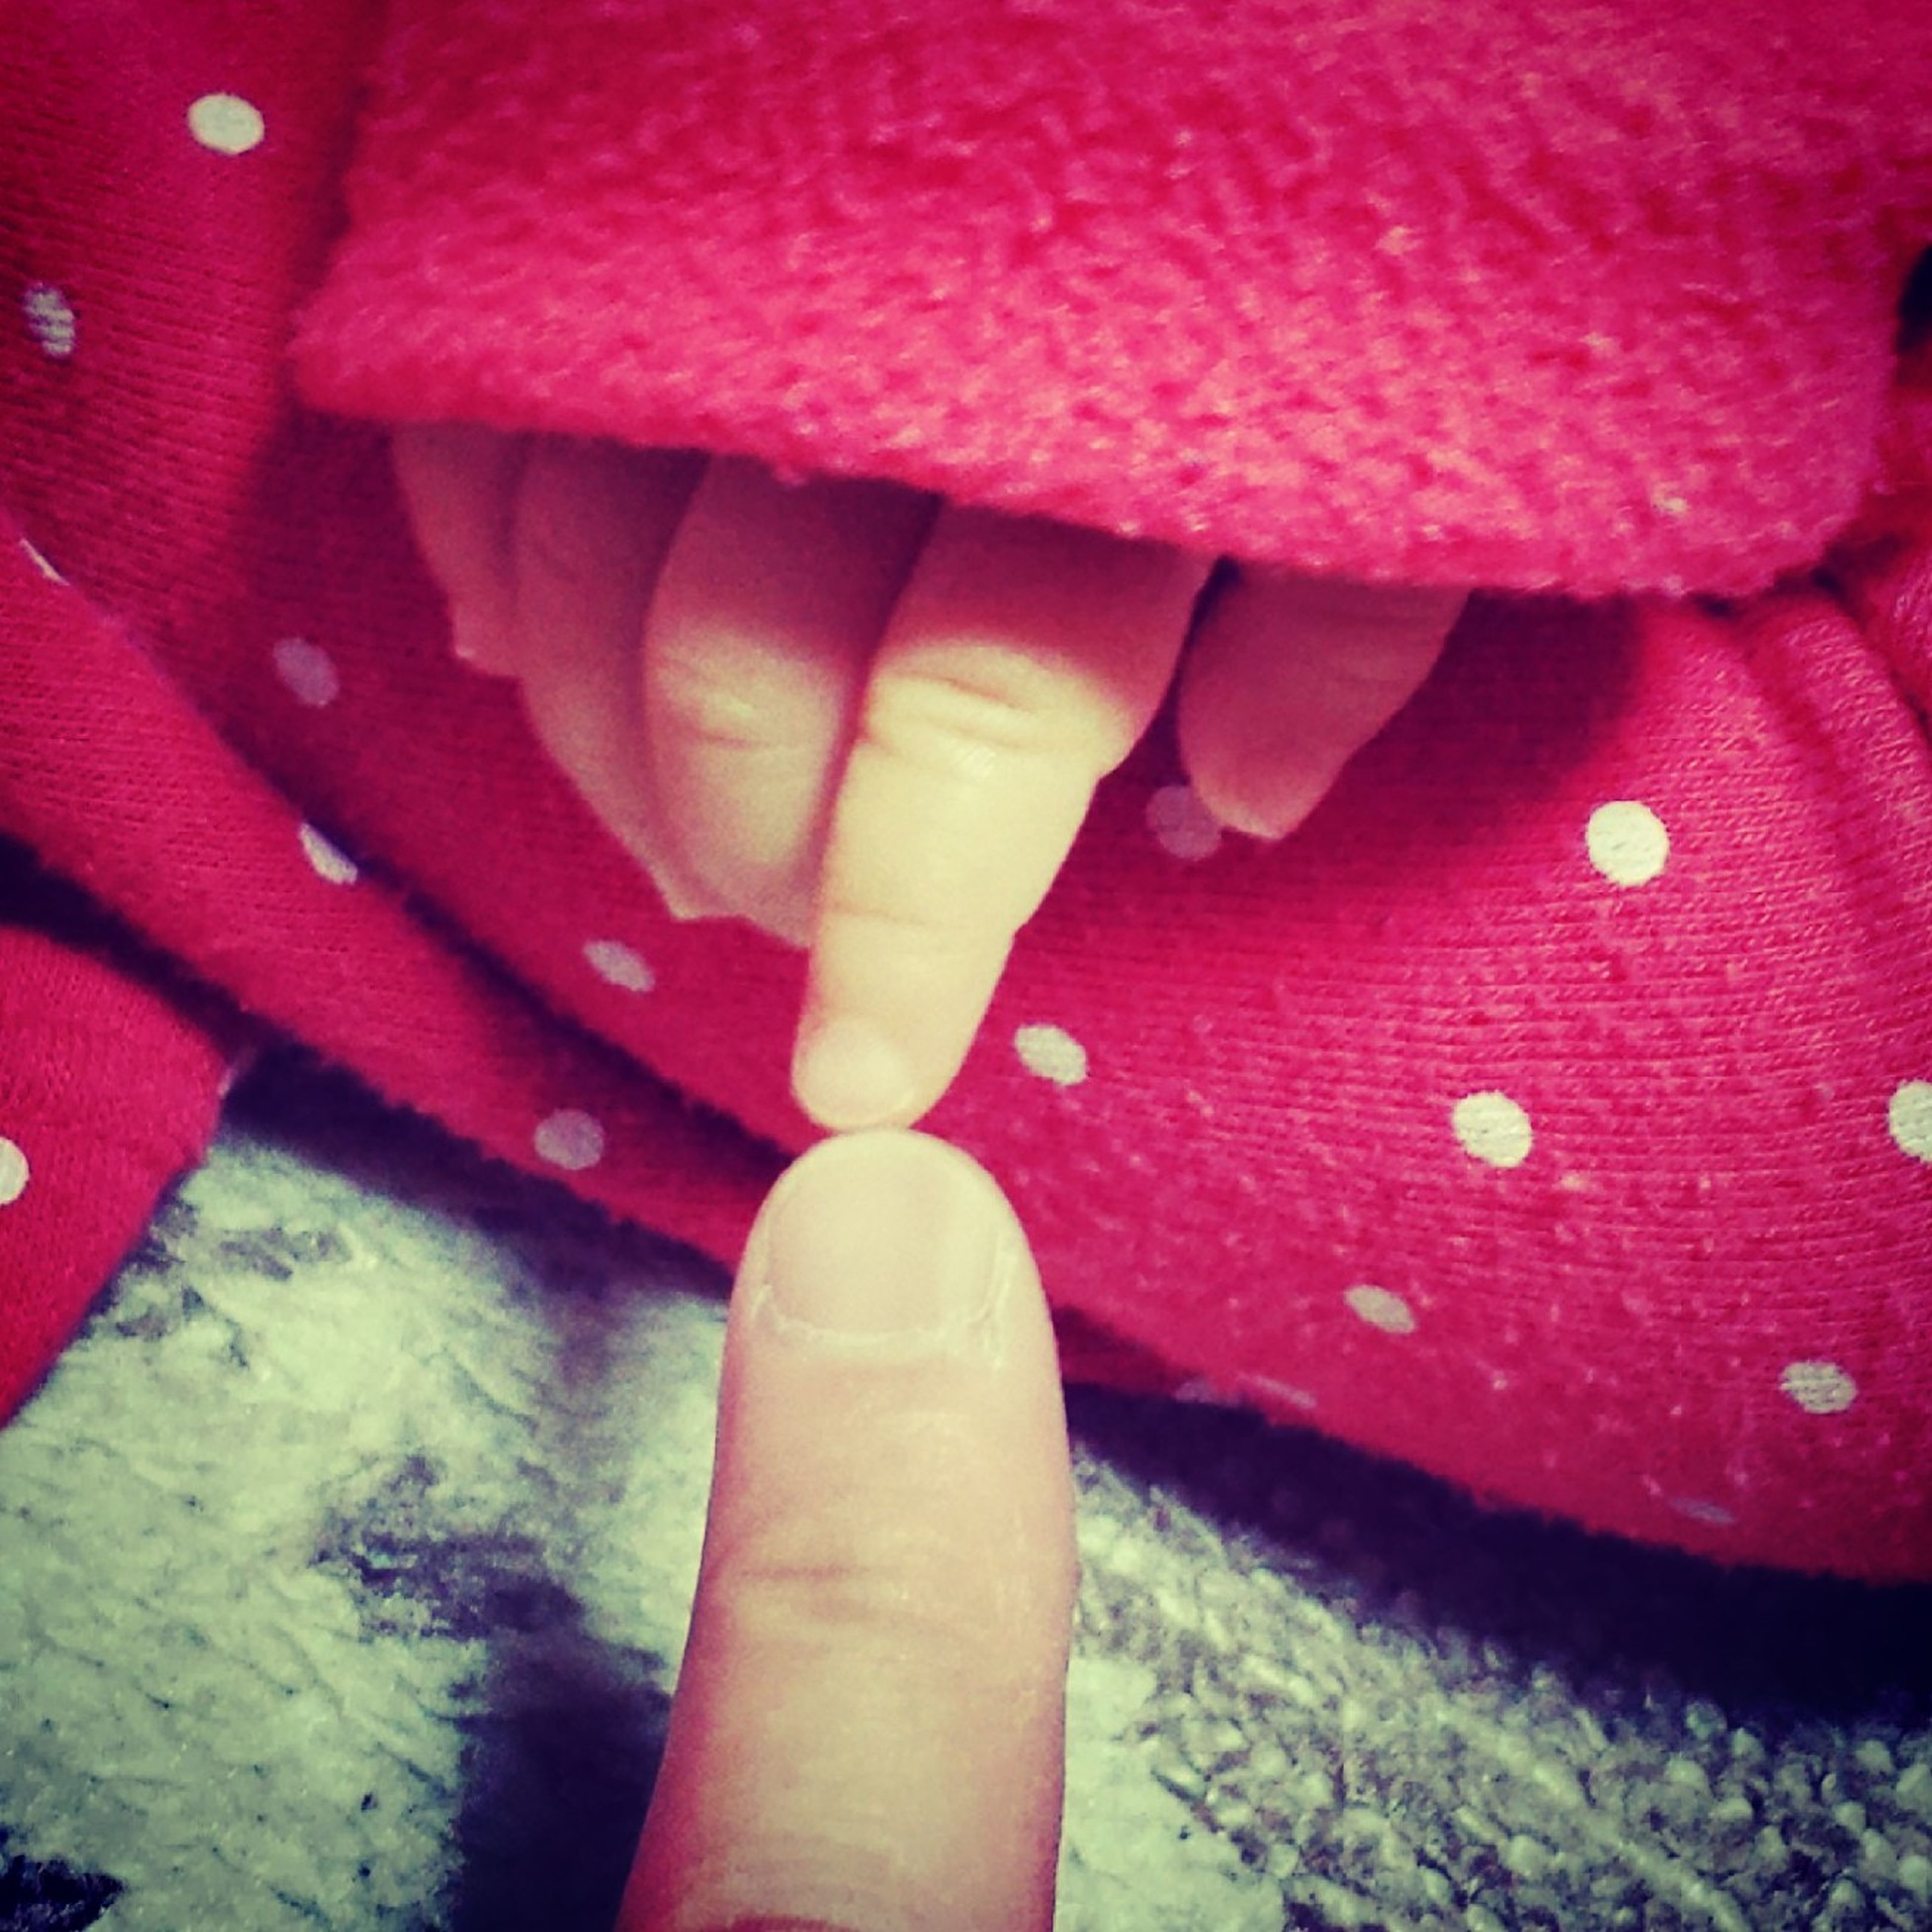 red, person, indoors, part of, lifestyles, holding, cropped, low section, close-up, pink color, human finger, leisure activity, personal perspective, unrecognizable person, human foot